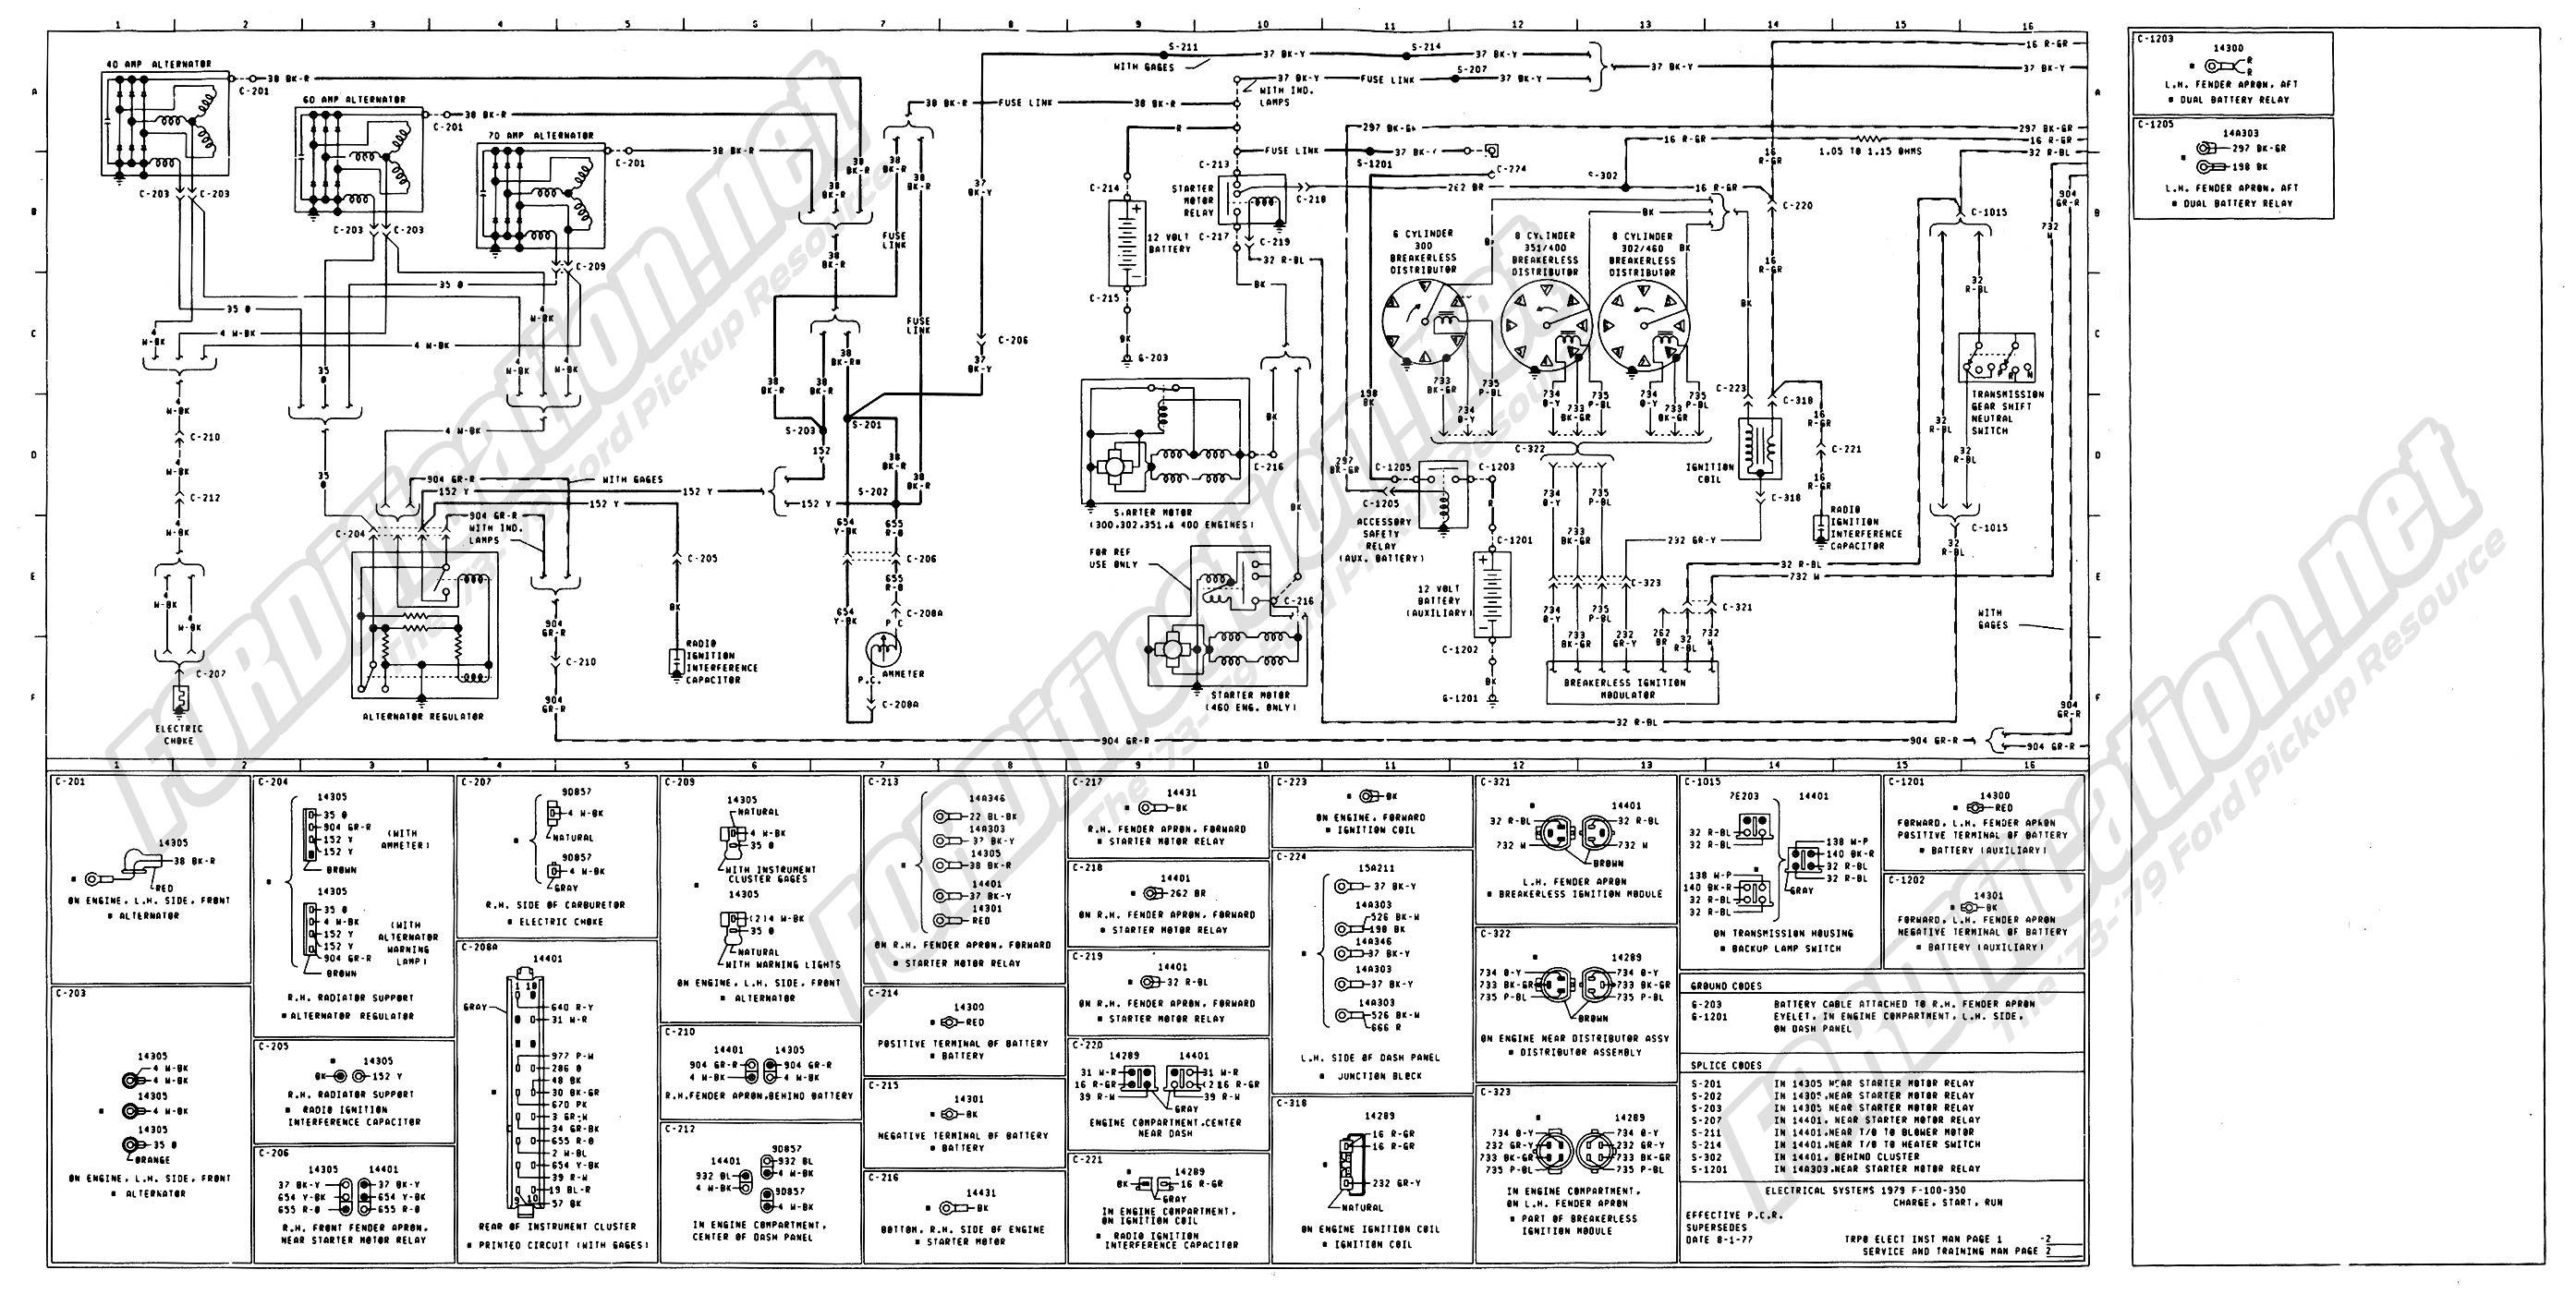 1973 ford f 150 wiring diagram wiring diagrams best 1973 1979 ford truck wiring diagrams schematics fordification net ford wiring harness diagrams 1973 ford f 150 wiring diagram